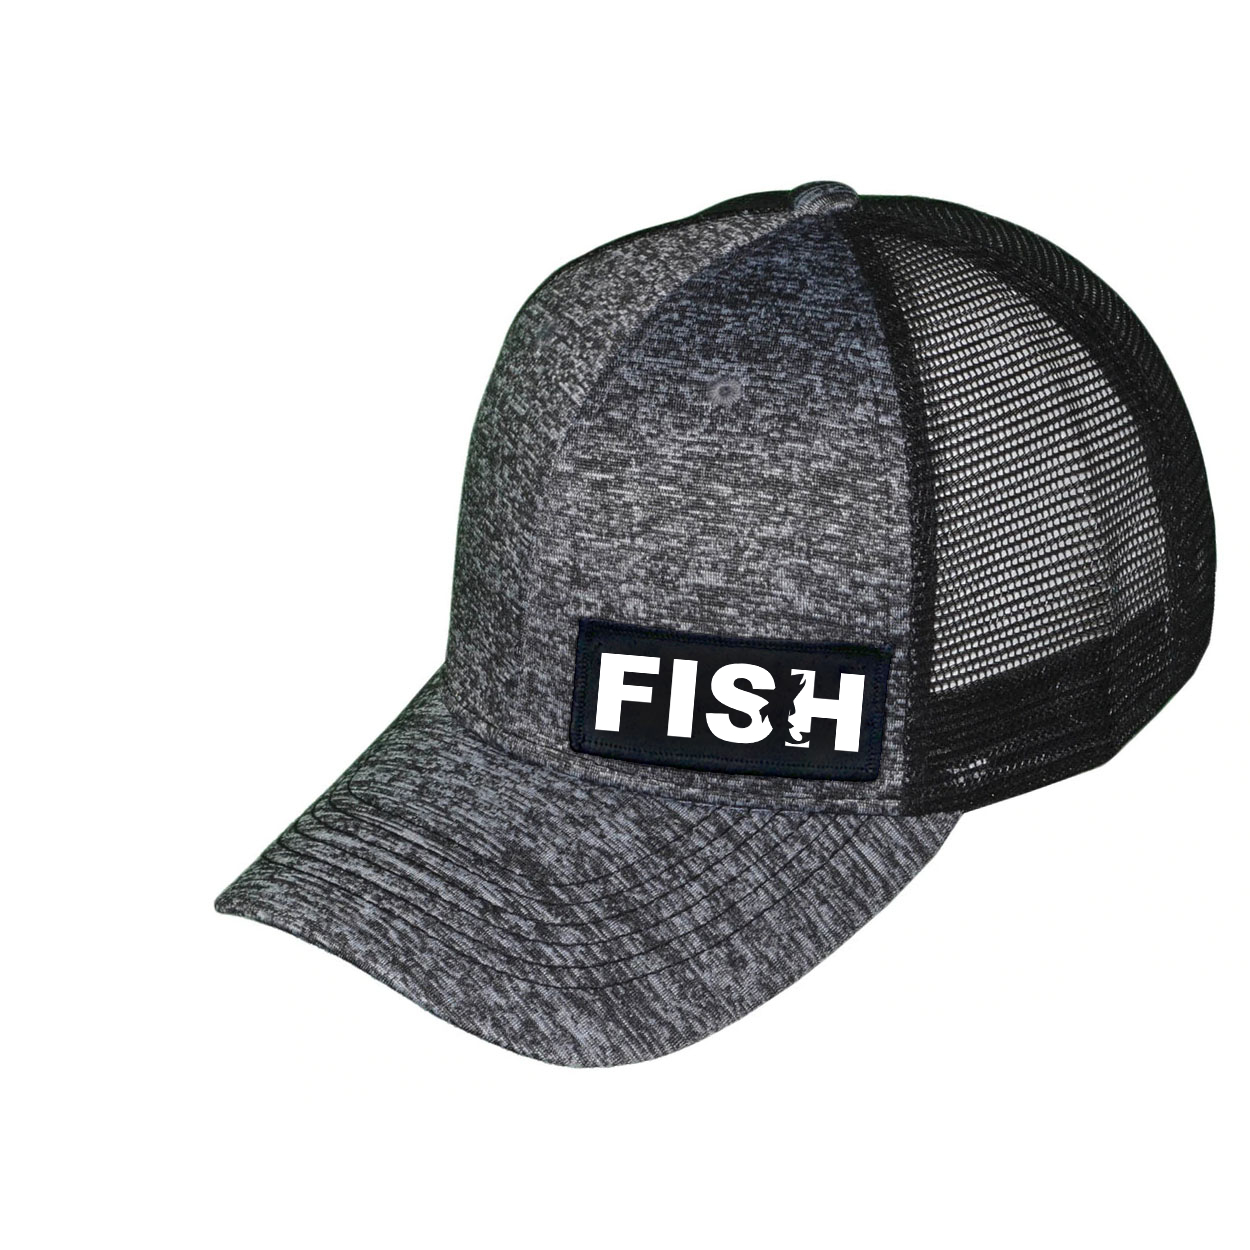 Fish Catch Logo Night Out Woven Patch Melange Snapback Trucker Hat Gray/Black (White Logo)